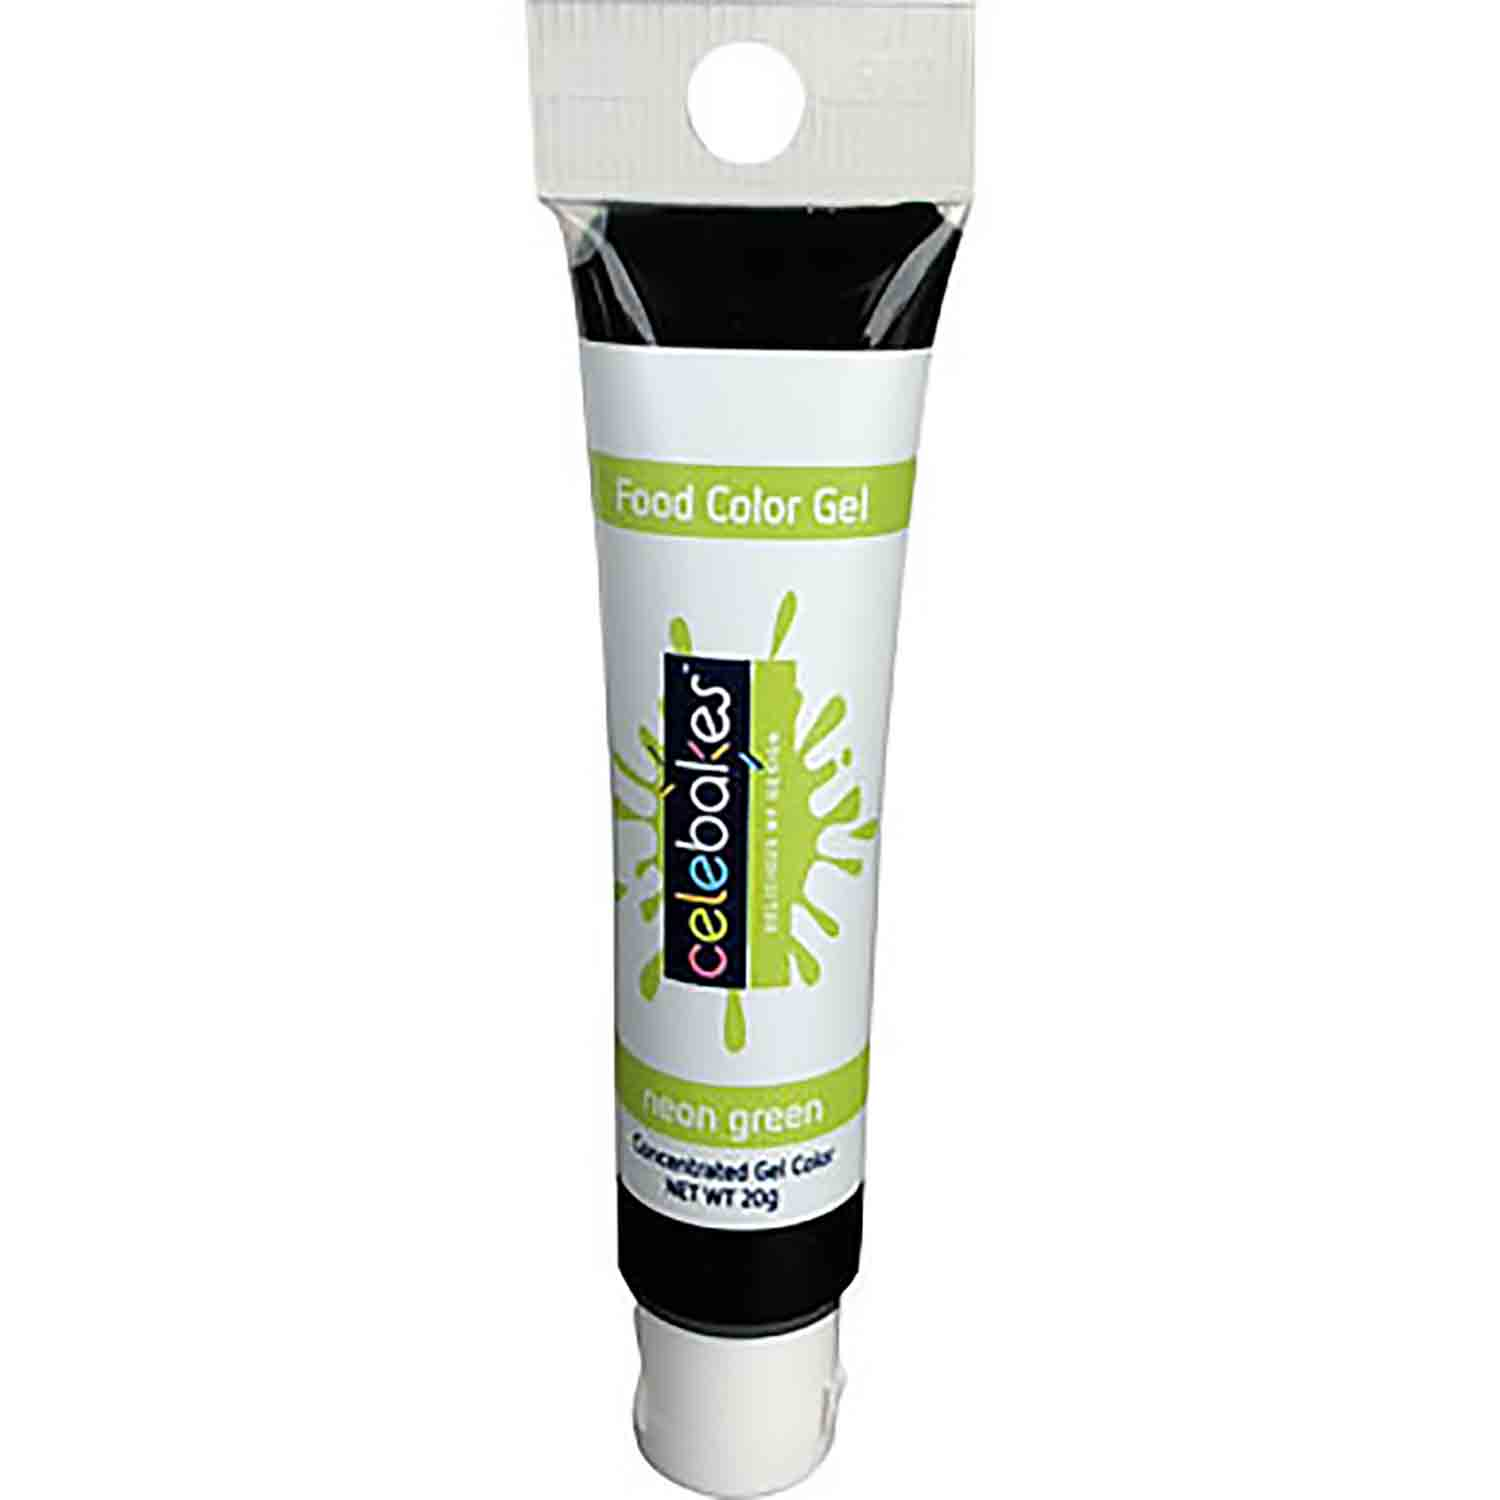 Neon Green Food Color Gel